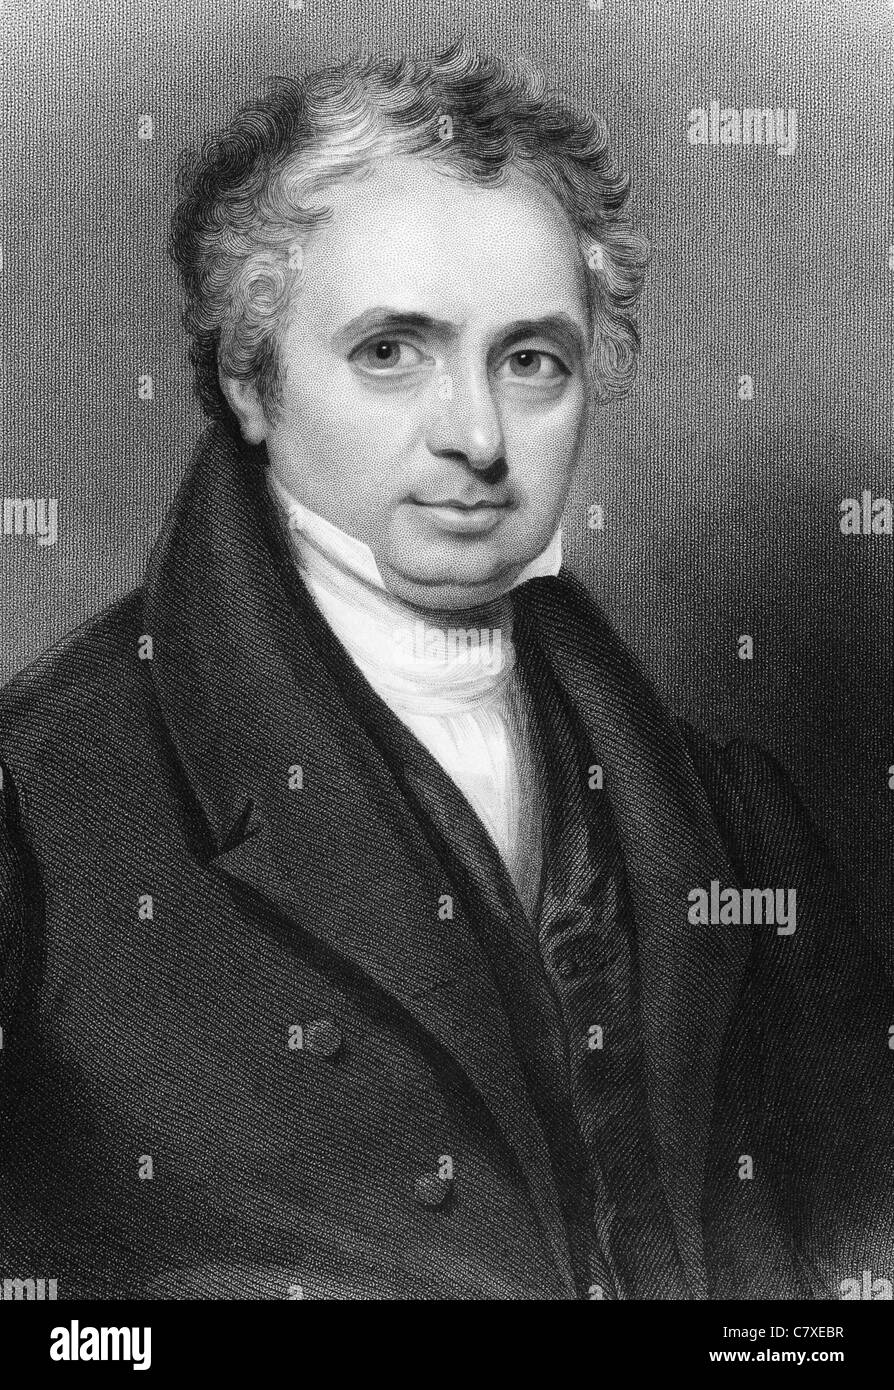 William Holmes (1779-1851) on engraving from 1837. British Tory politician of early 19th century and MP for 28 years. - Stock Image